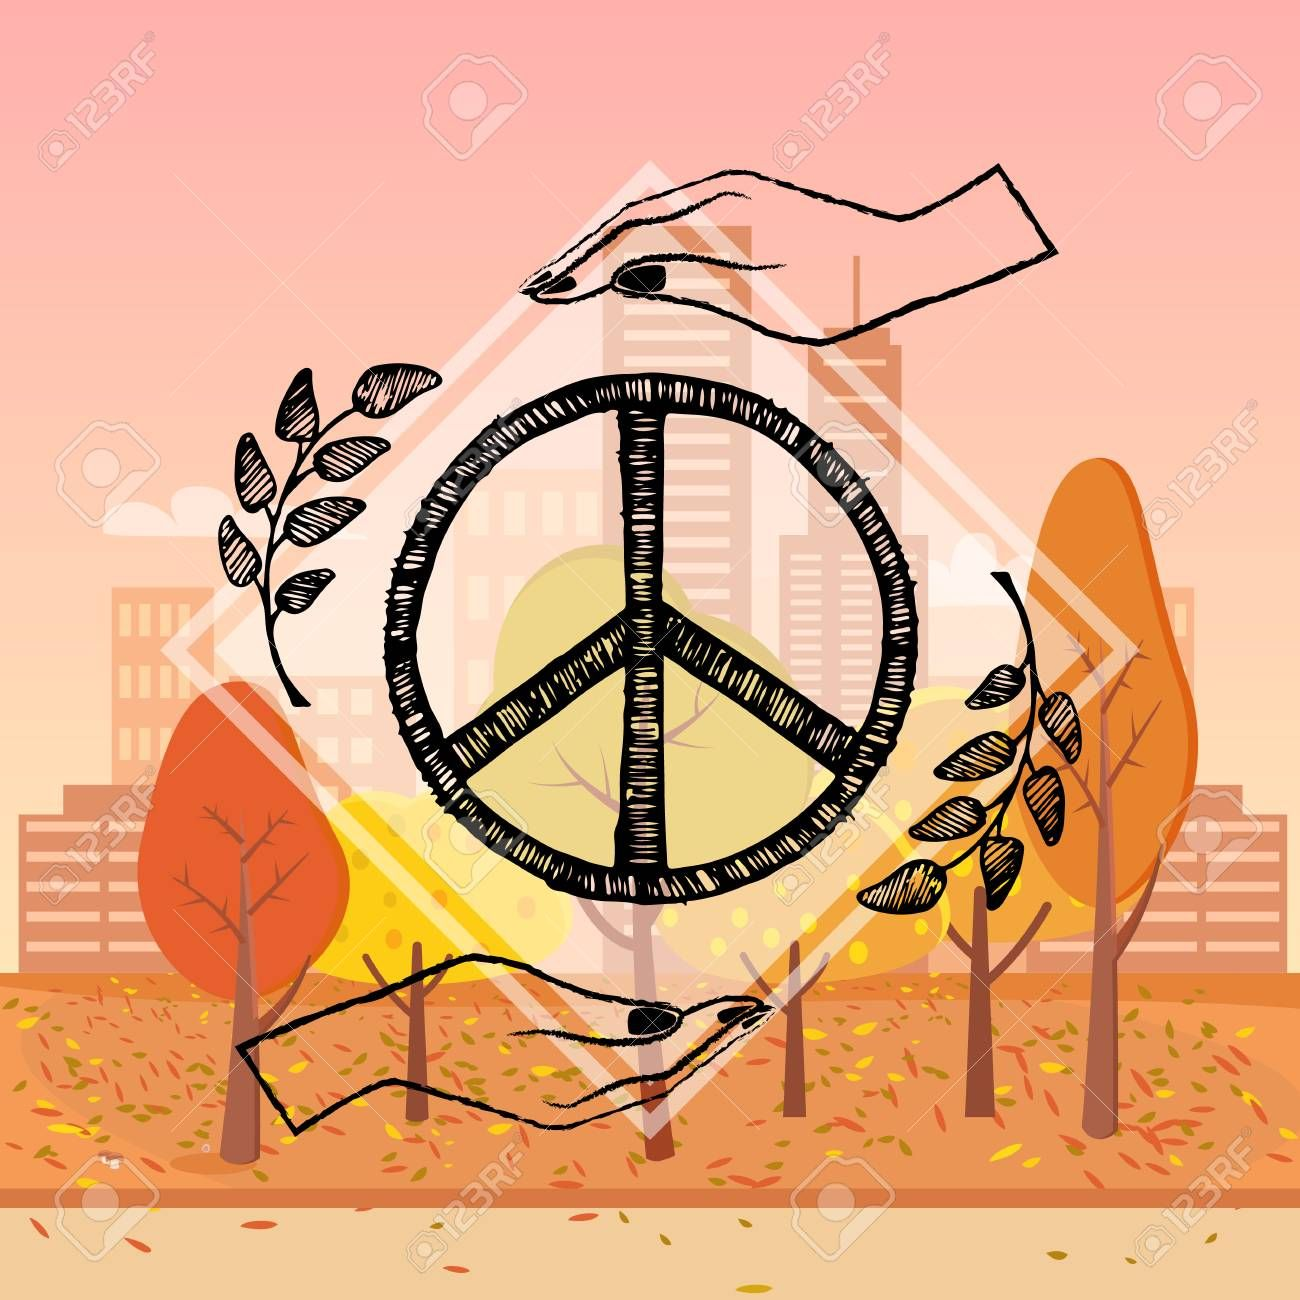 International Peace Day Poster With Two Hands Protecting Sign Of Freedom Vector Illustration With Olive Branches On On Autumn Ci Olive Branch Peace Logo Design